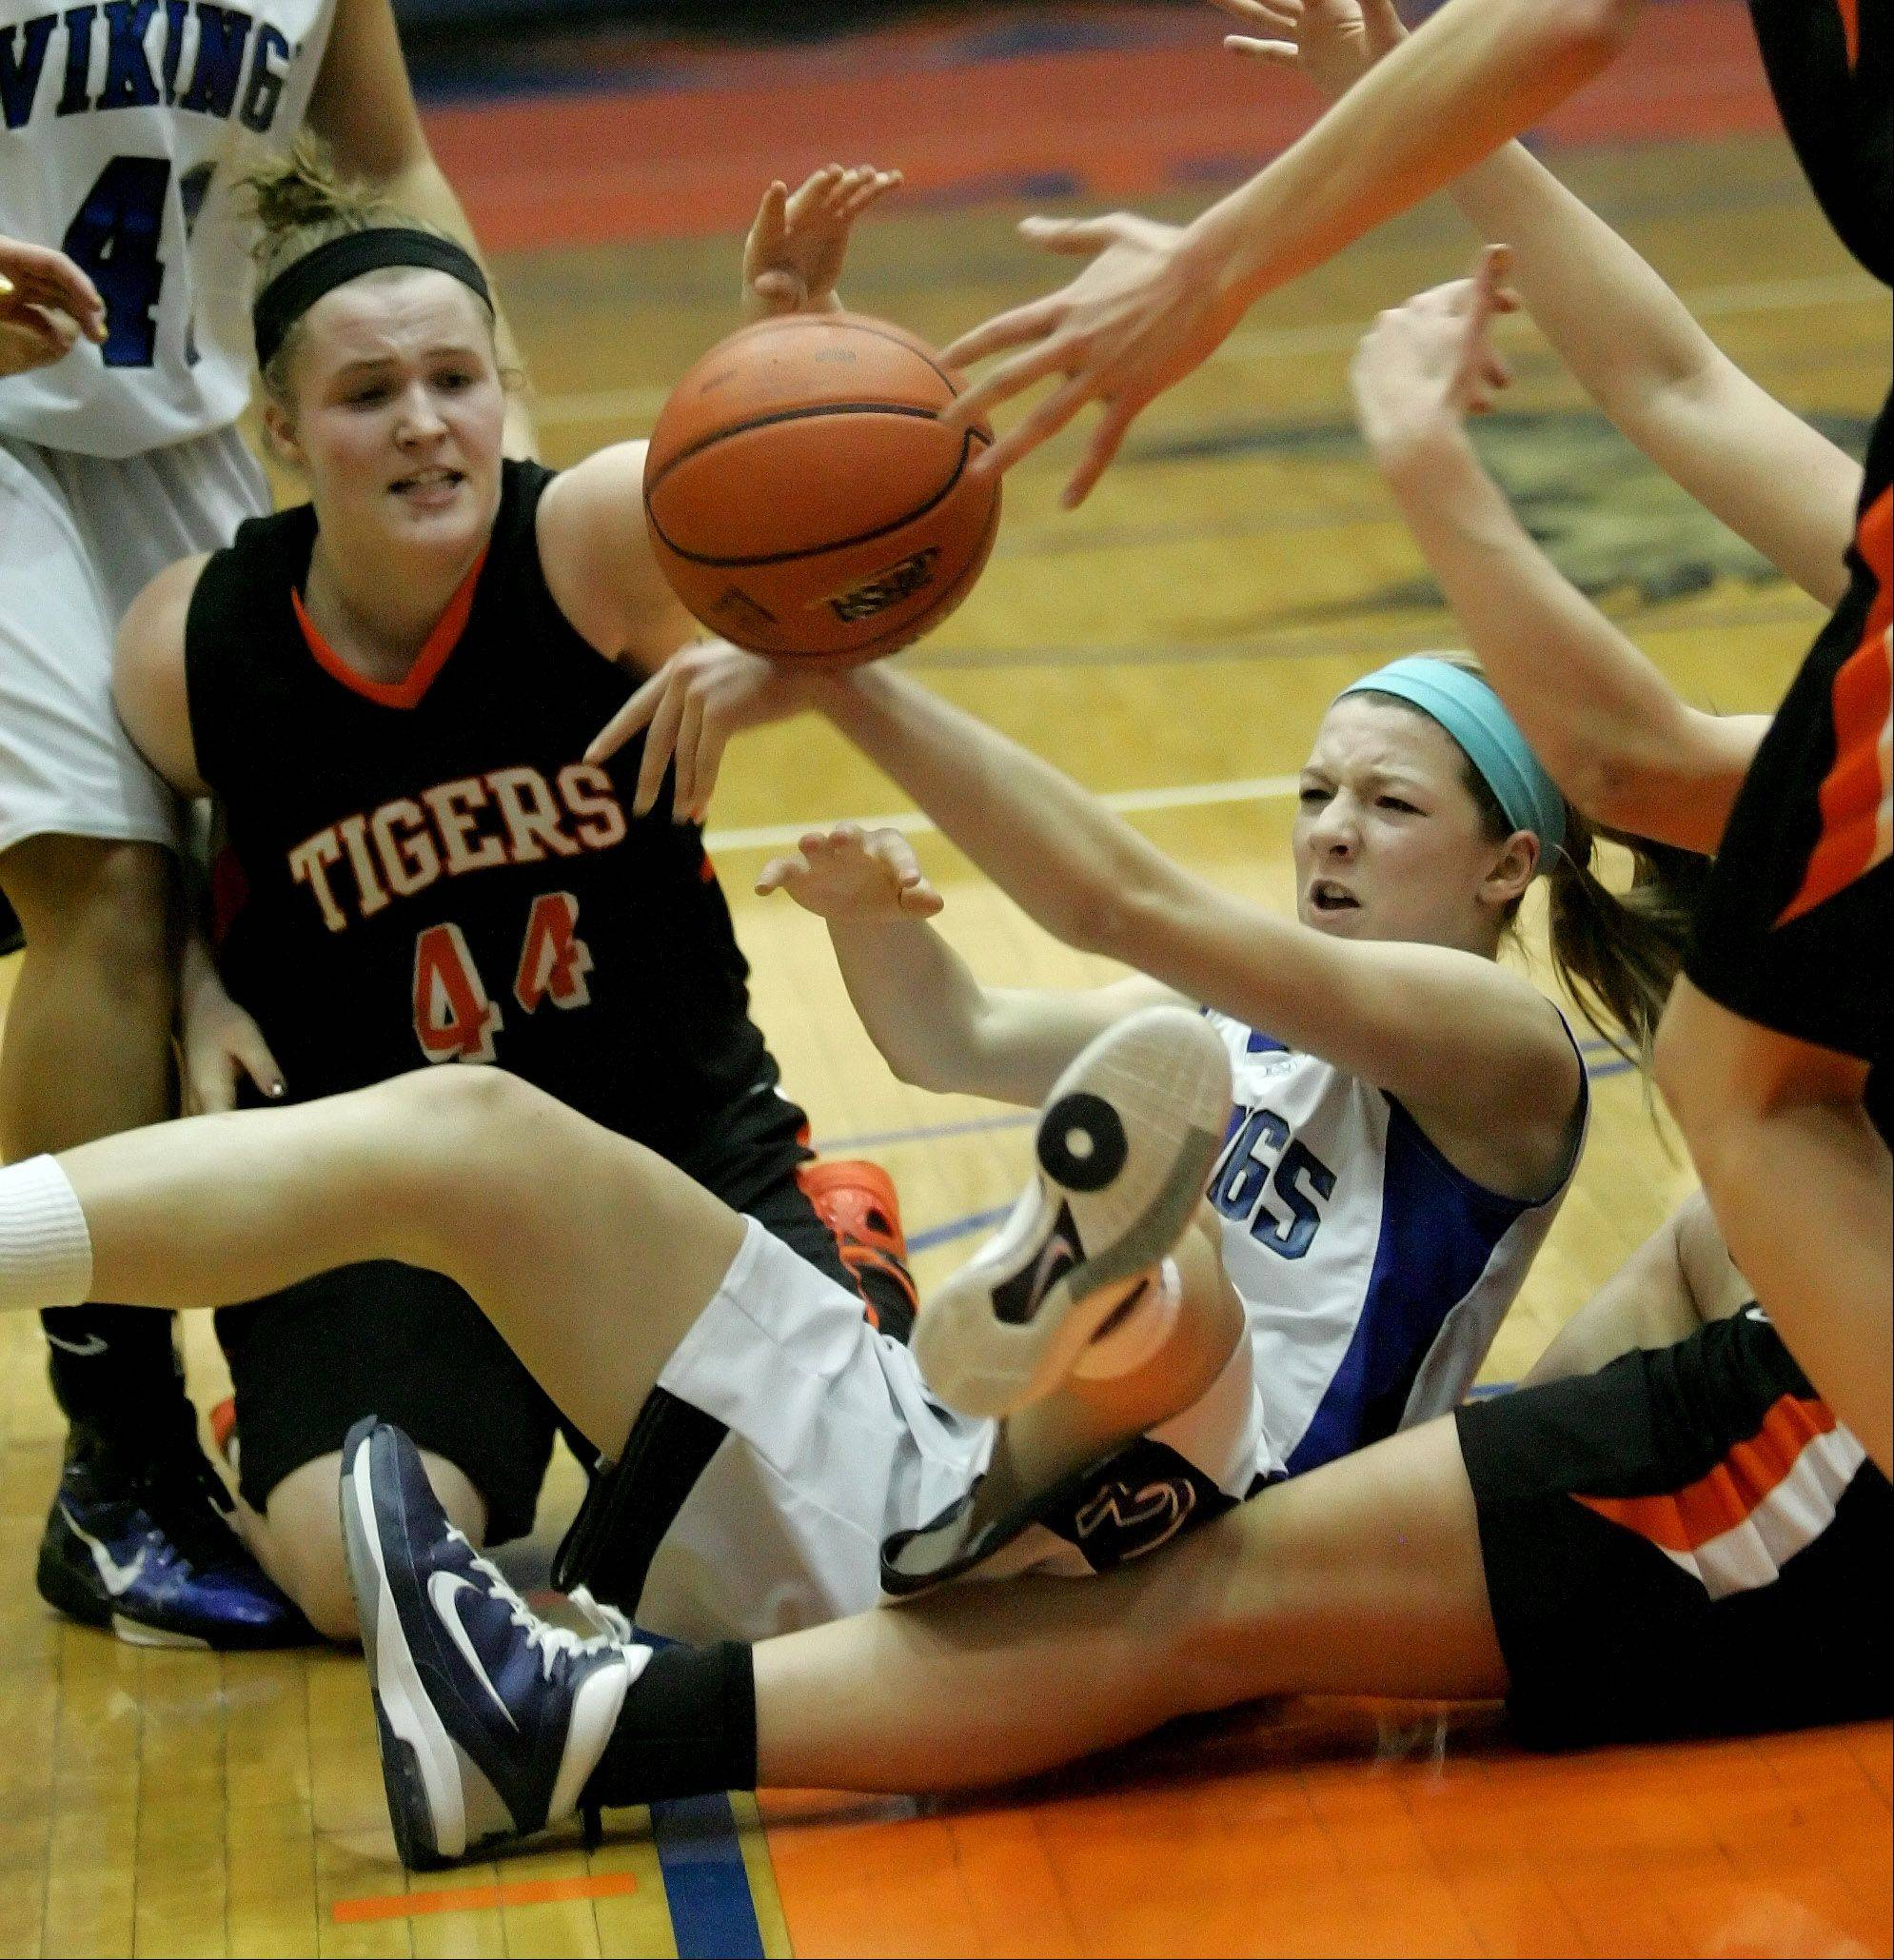 Olivia Linebarger of Wheaton Warrenville South, left and Michaela Loebel of Geneva tumble chasing a ball in Class 4A sectional semifinal girls basketball game at Hoffman Estates on Monday.